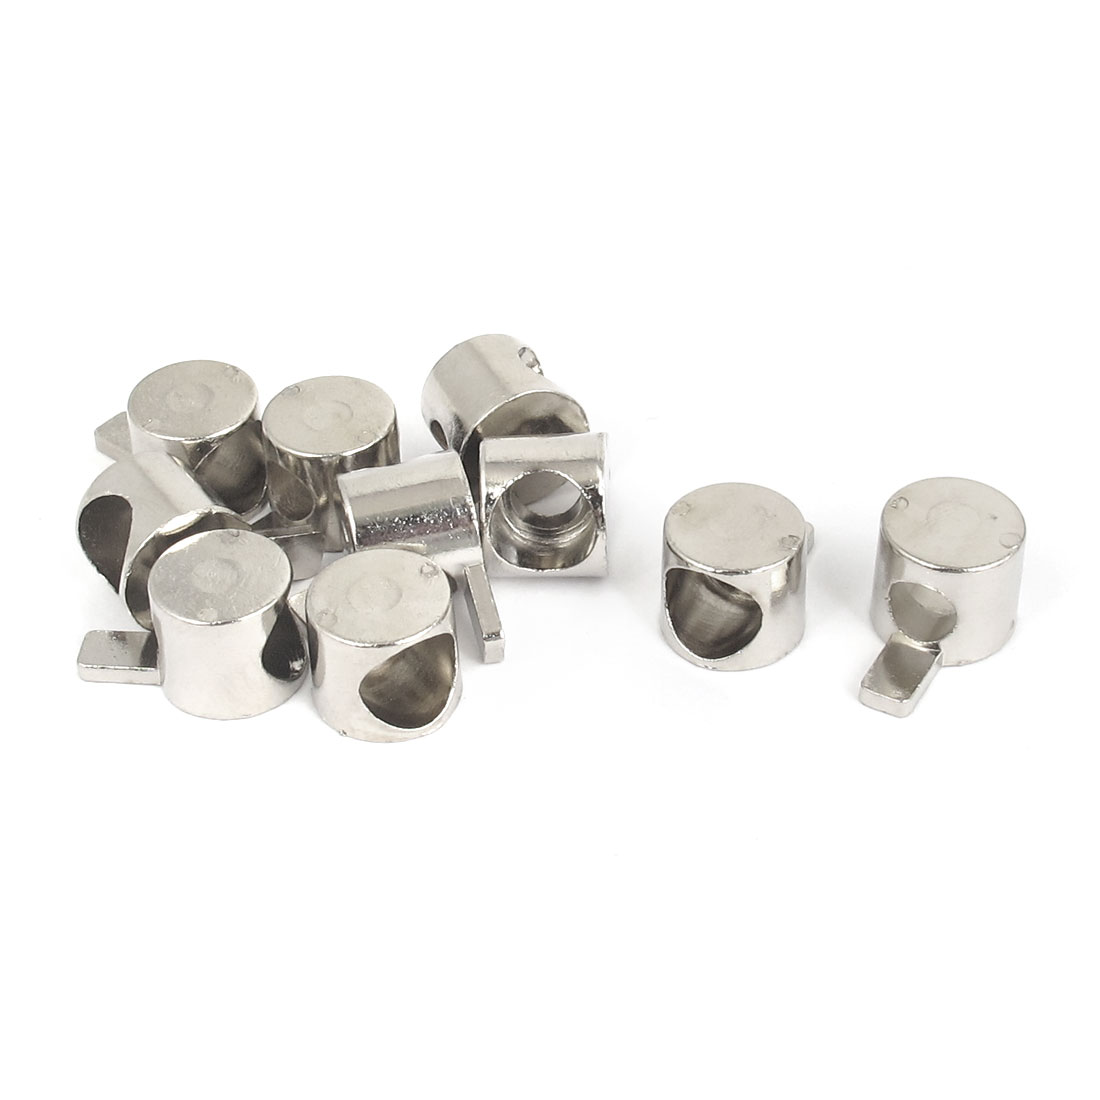 10Pcs Metal Profile Inner Connect T Slot Anchor Fastener for 6mm Thread Dia